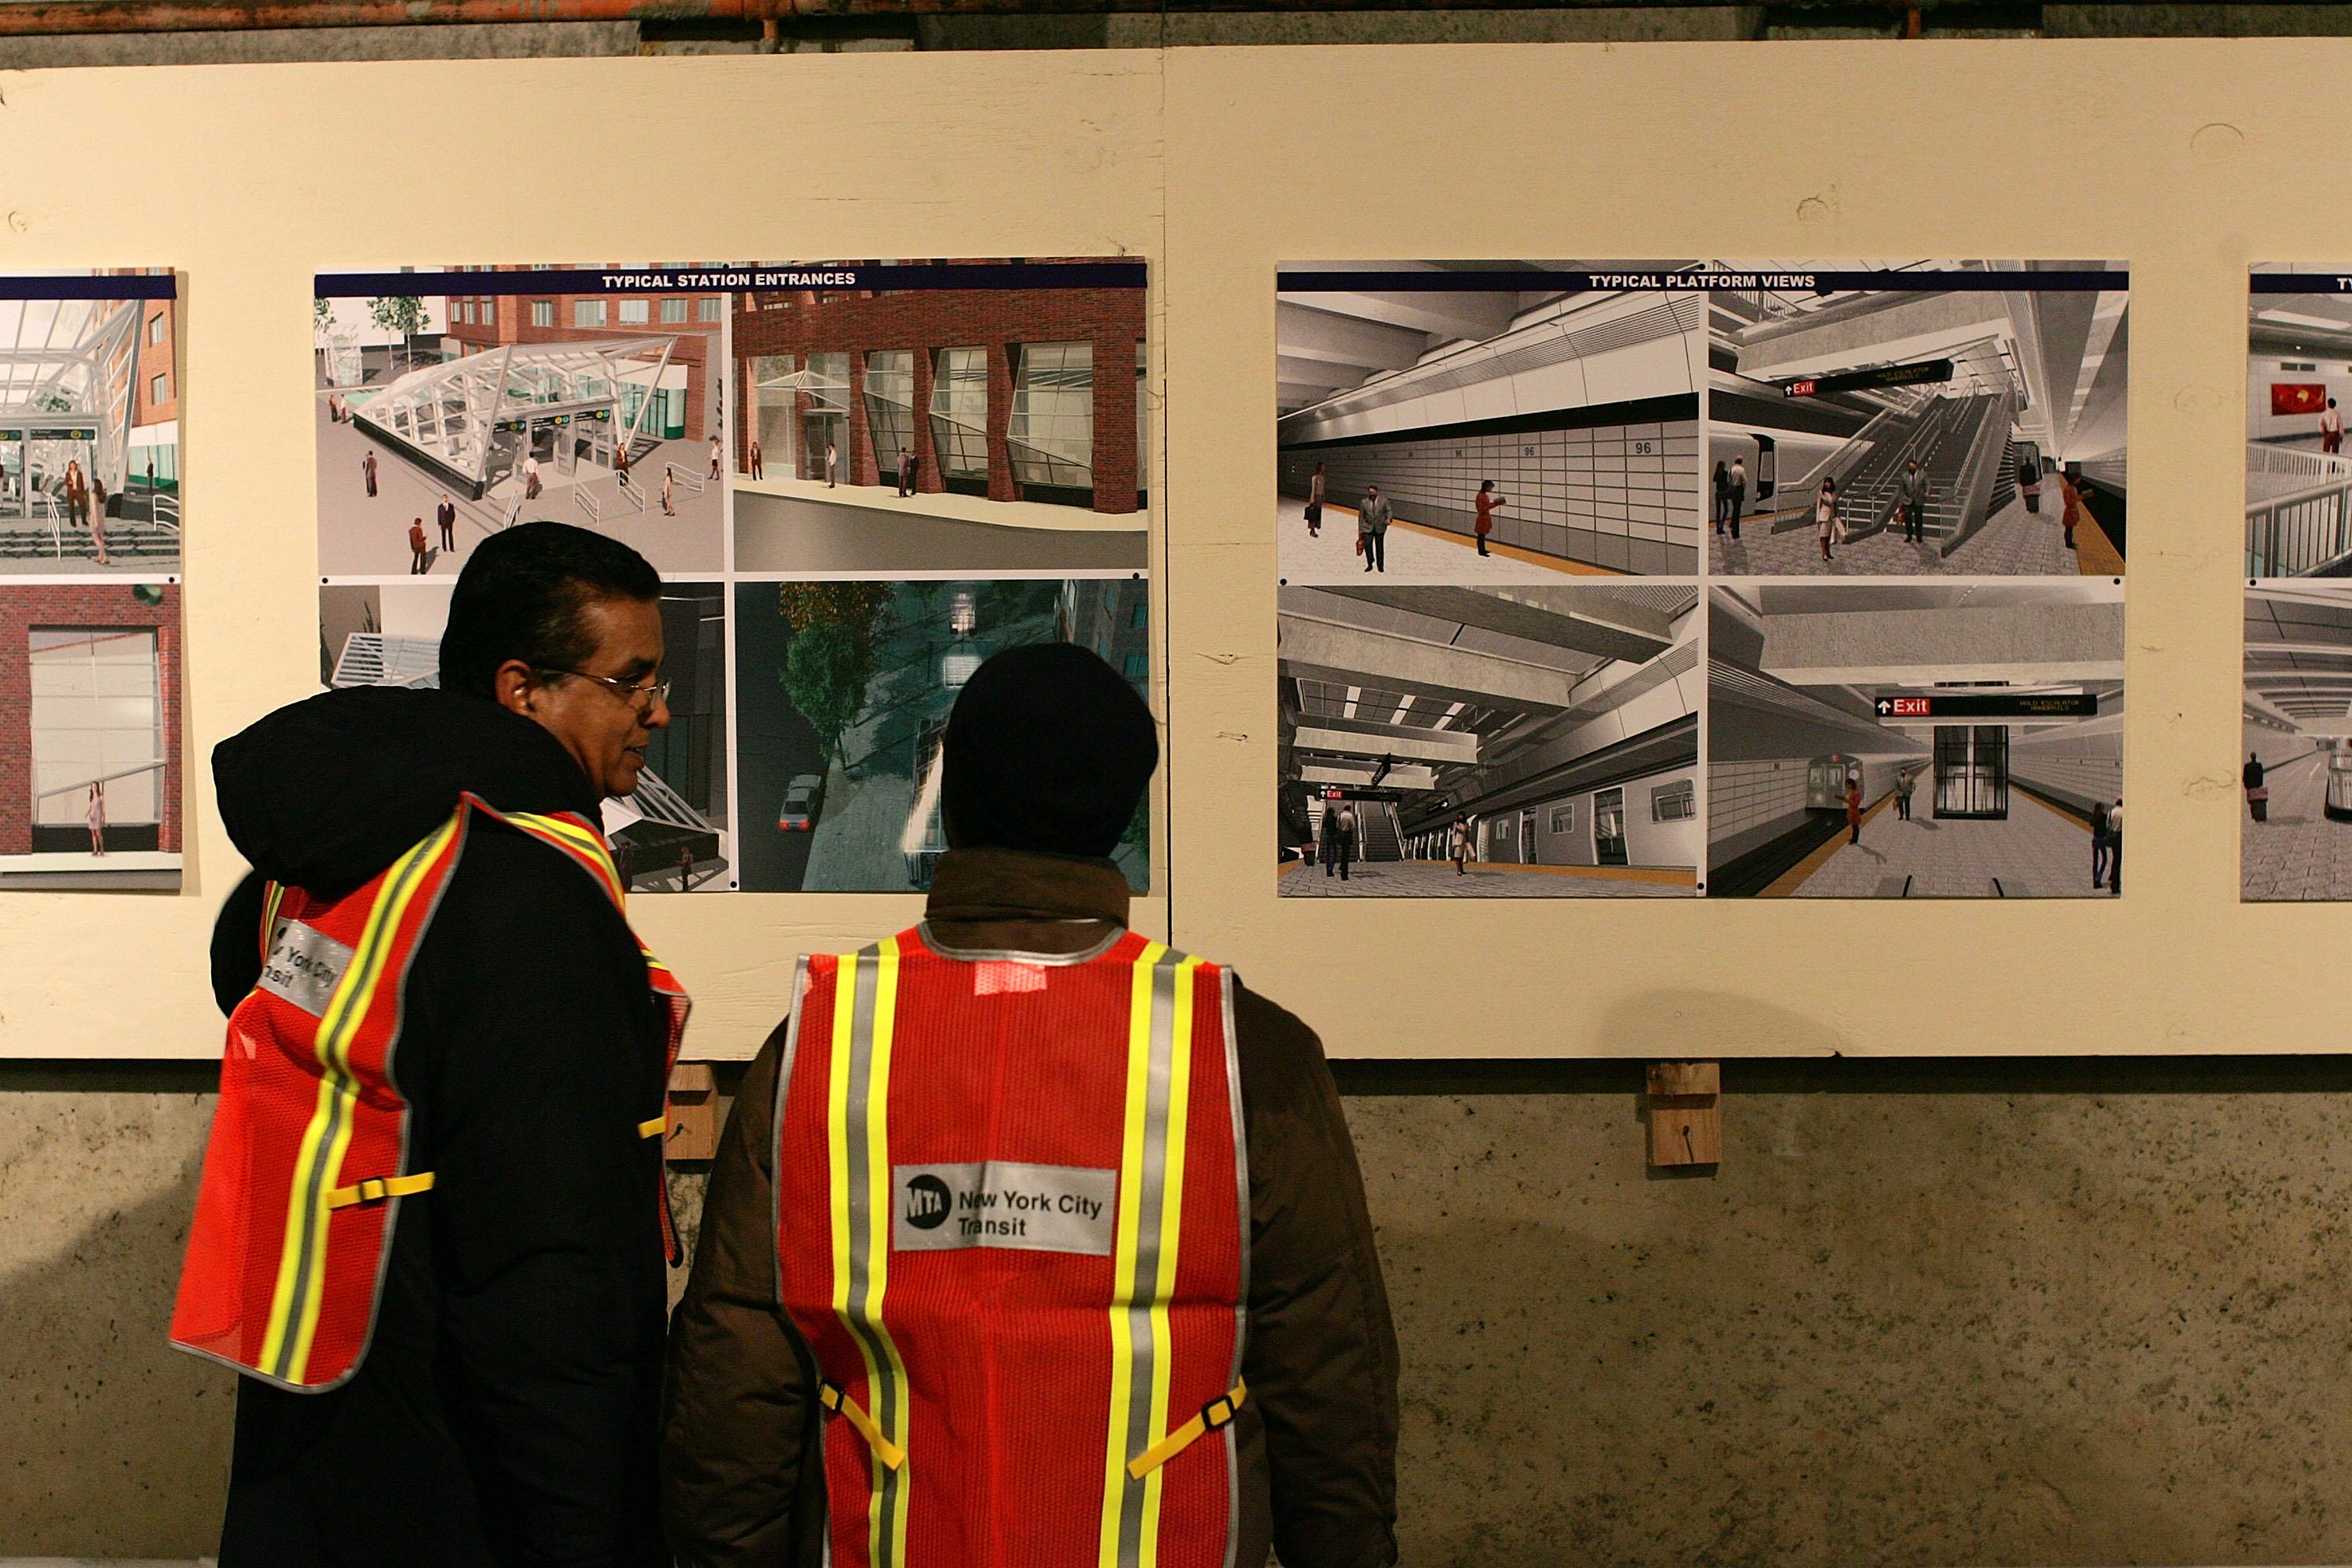 NEW YORK - APRIL 12: Metropolitan Transportation Authority (MTA) workers look at proposed designs for a completed subway platform in an underground tunnel for the long-proposed 2nd Avenue subway line April 12, 2007 in New York City. A groundbreaking ceremony was held for the line, one of numerous since the project was first proposed 80 years ago. The first phase of the line is scheduled to be completed in 2013, running from 96th Street to 63rd Street at a cost of $3.8 billion. Upon completion, line would add 8.5 miles of tracks and carry five million riders on weekdays in four of New York City's five boroughs.